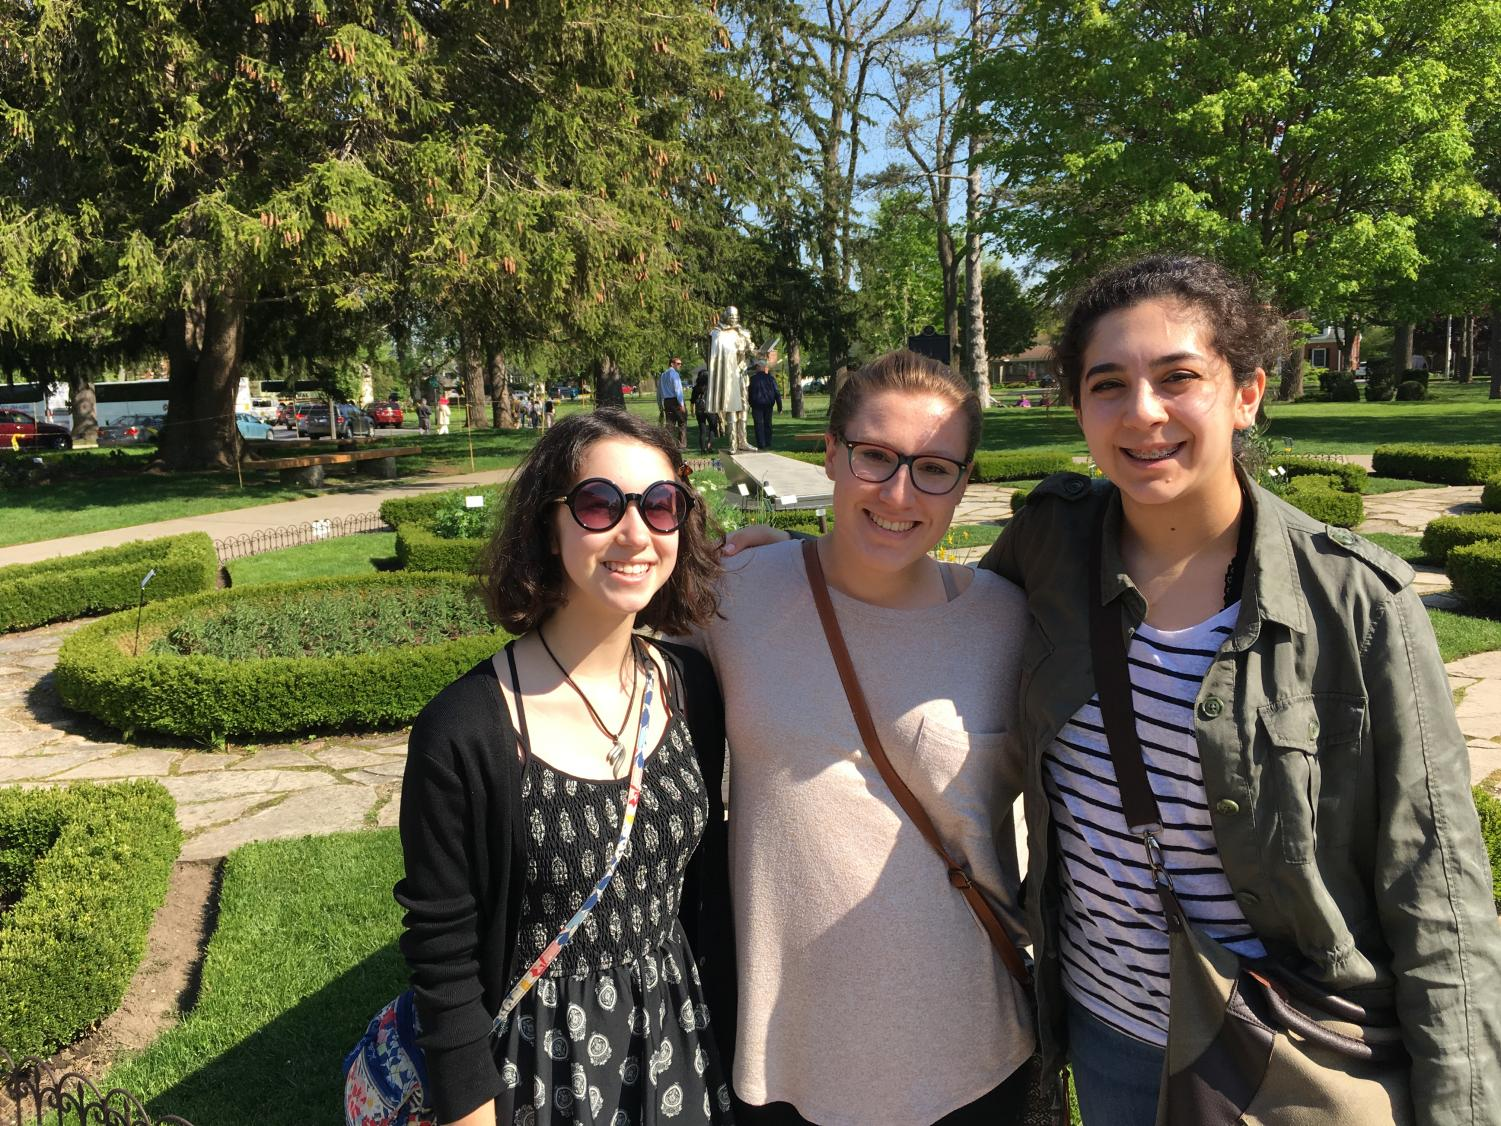 Natalie Boehmer, Anna Abundis, and Maddy Campbell, all '20, enjoy time in the park during last year's trip to Stratford.  Photo courtesy of Boehmer.